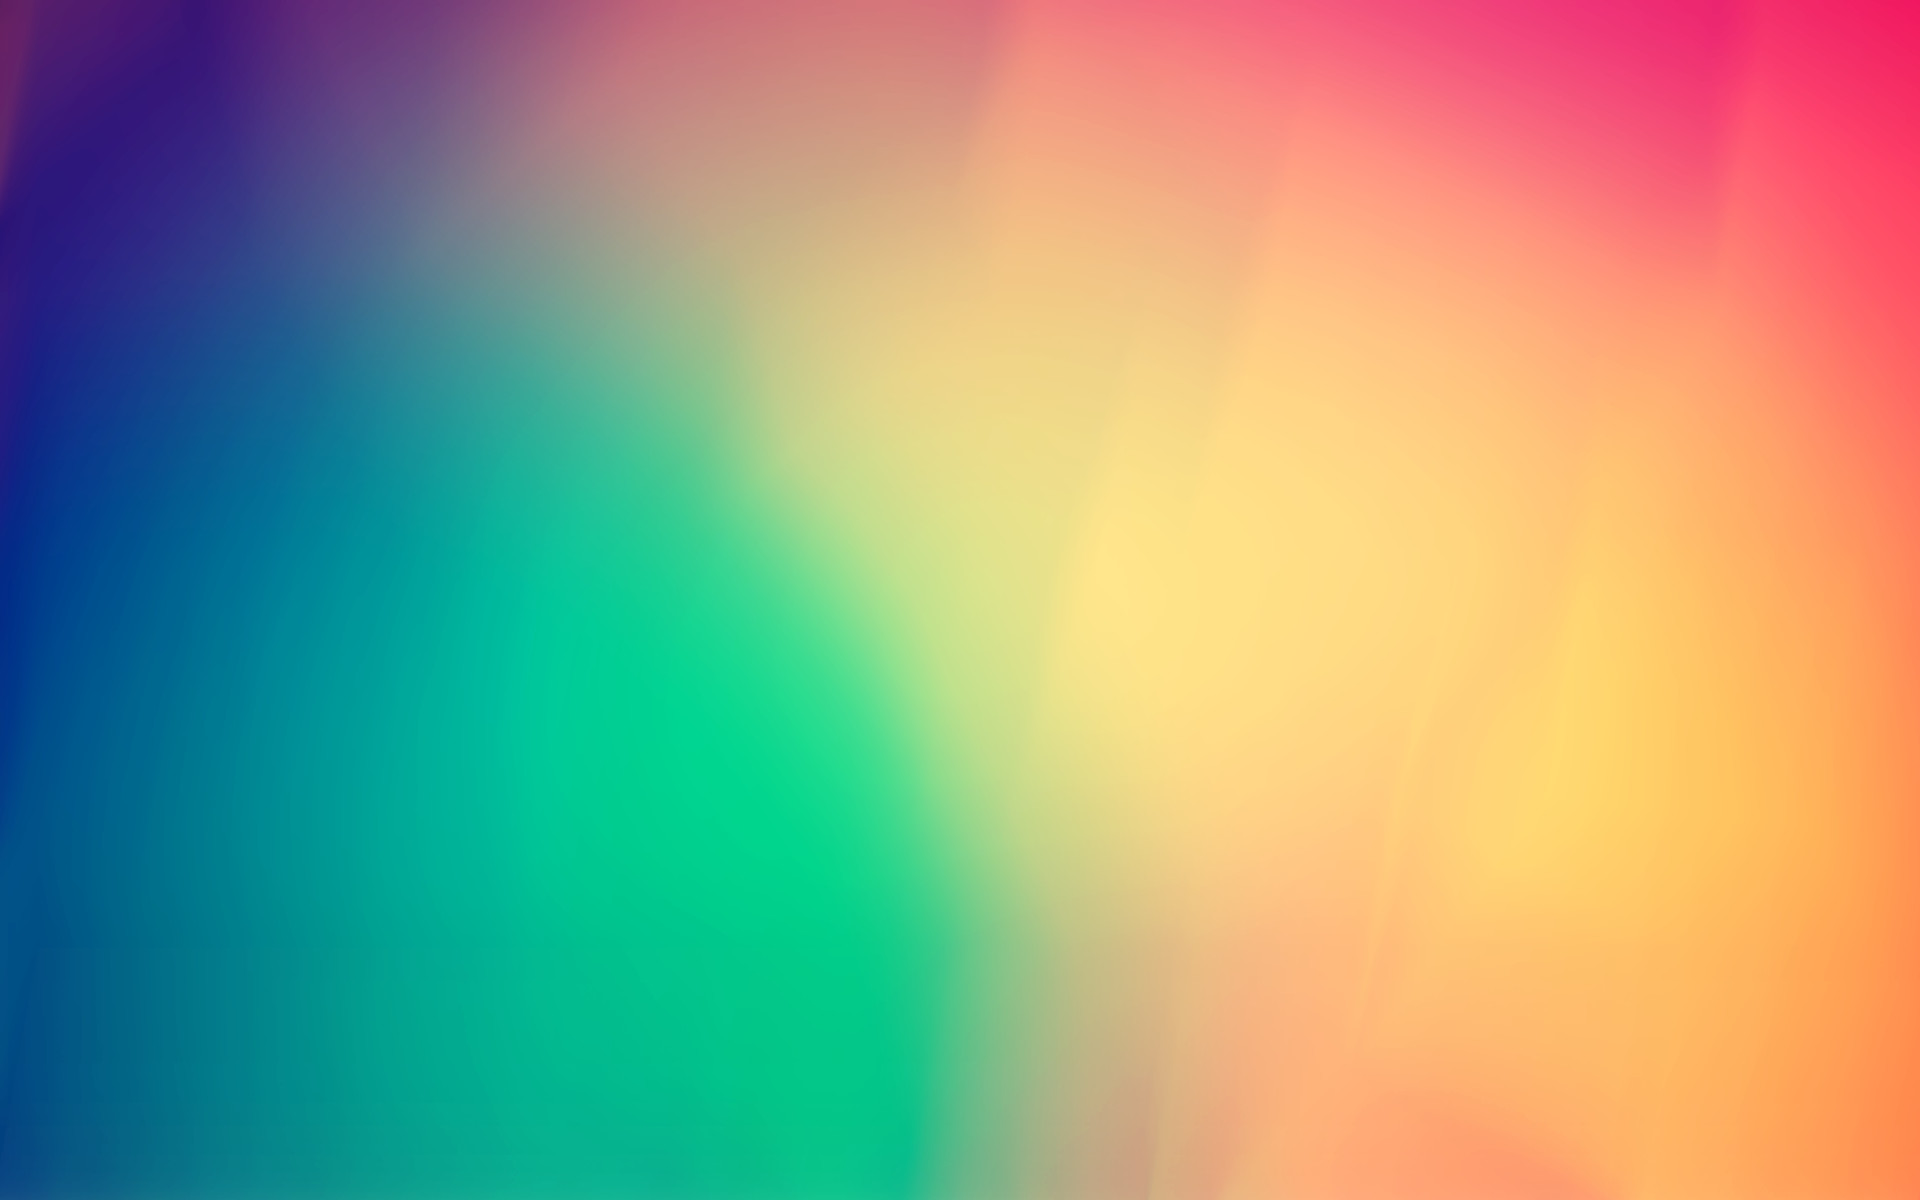 1920x1200 15 Excellent HD Gradient Wallpapers